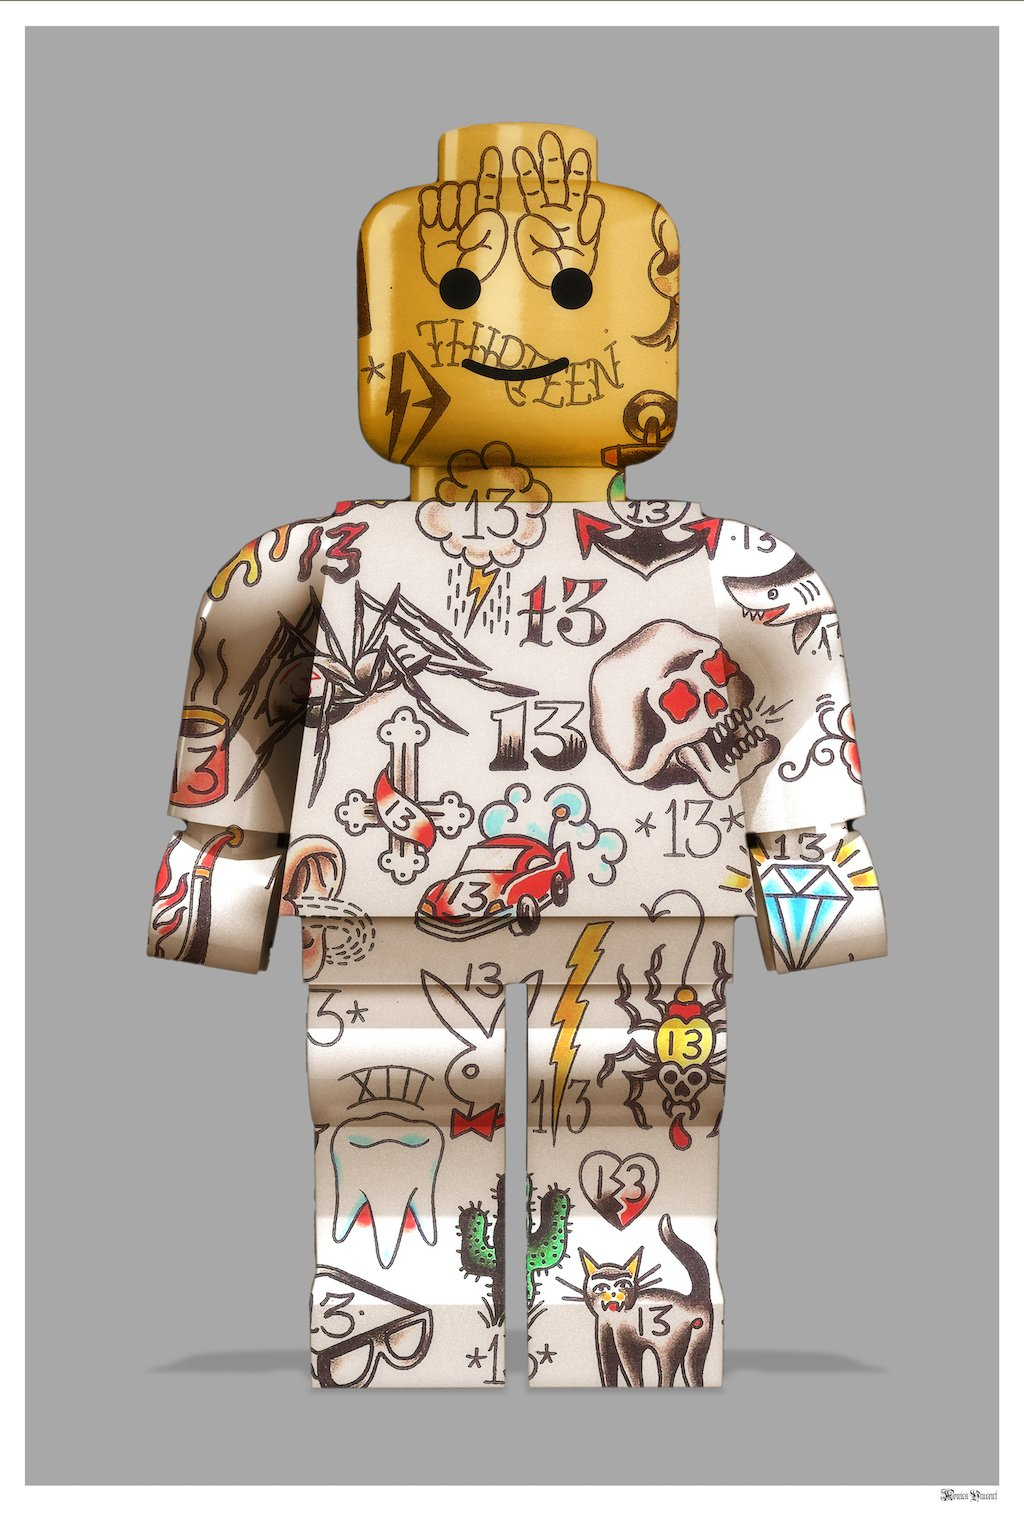 Graffiti Lego Man (Grey Background) - Small by Monica Vincent